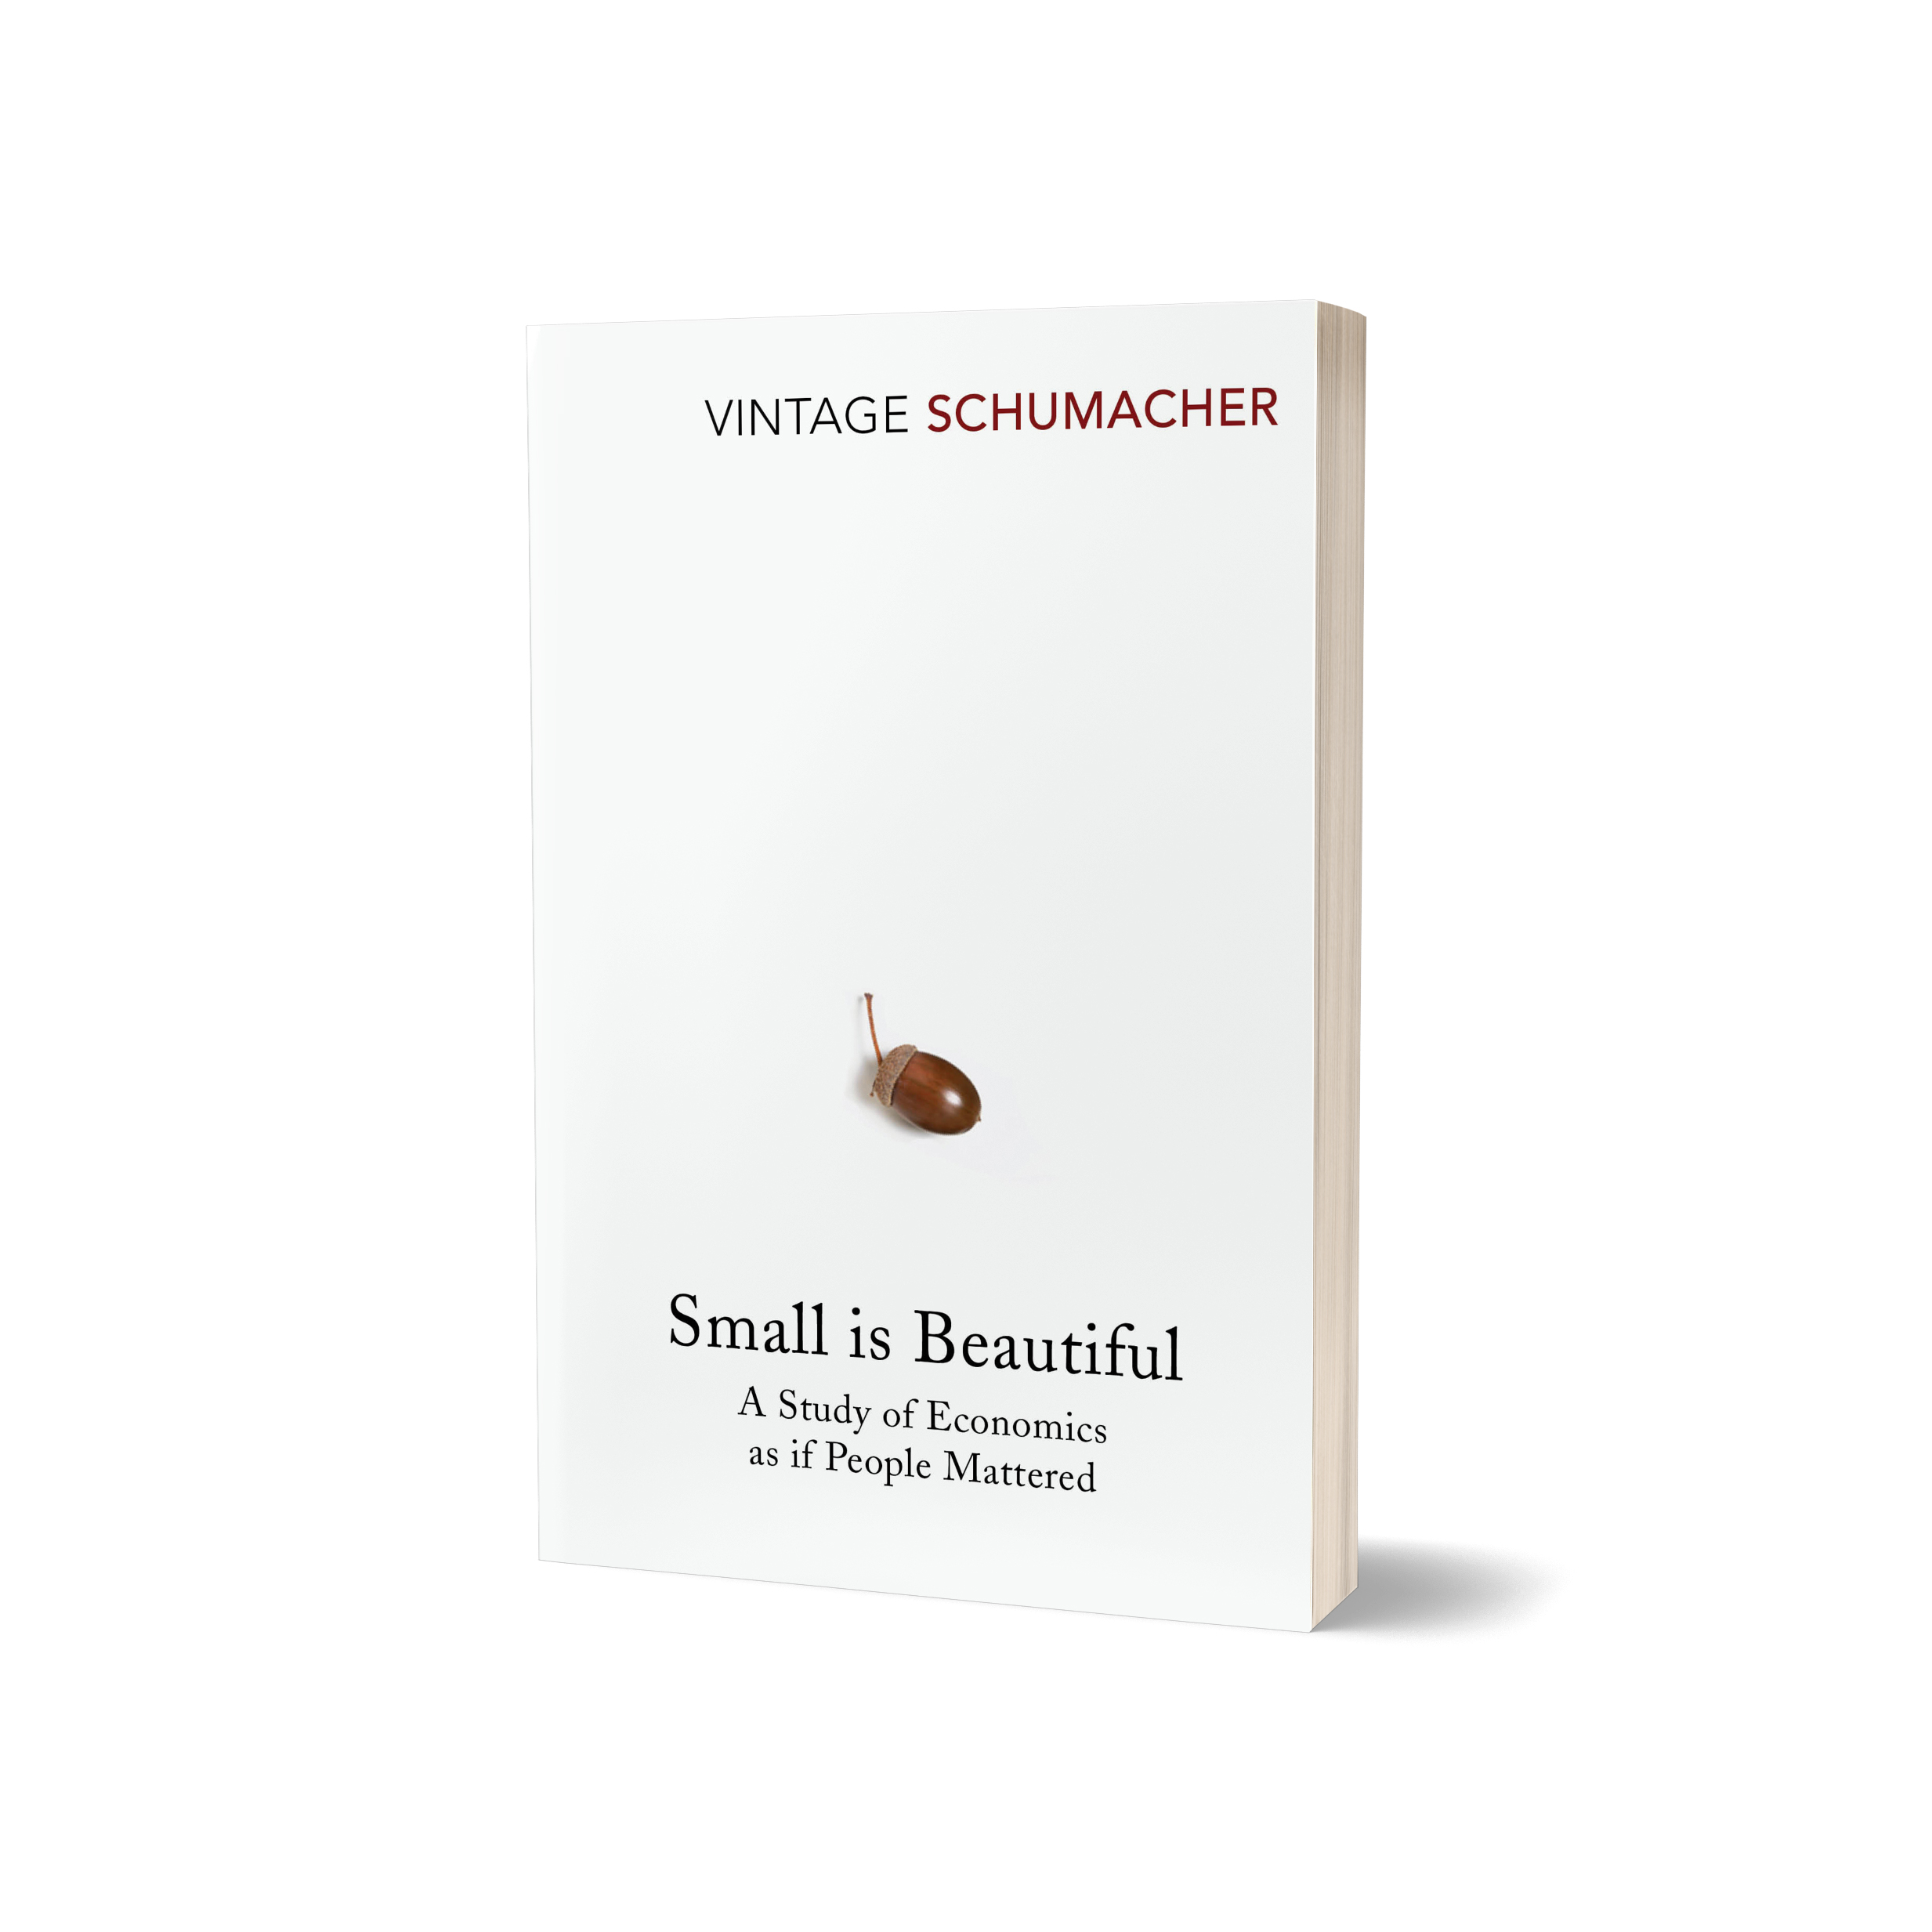 Small is Beautiful: Economics as if People Mattered, E.F Schumacher